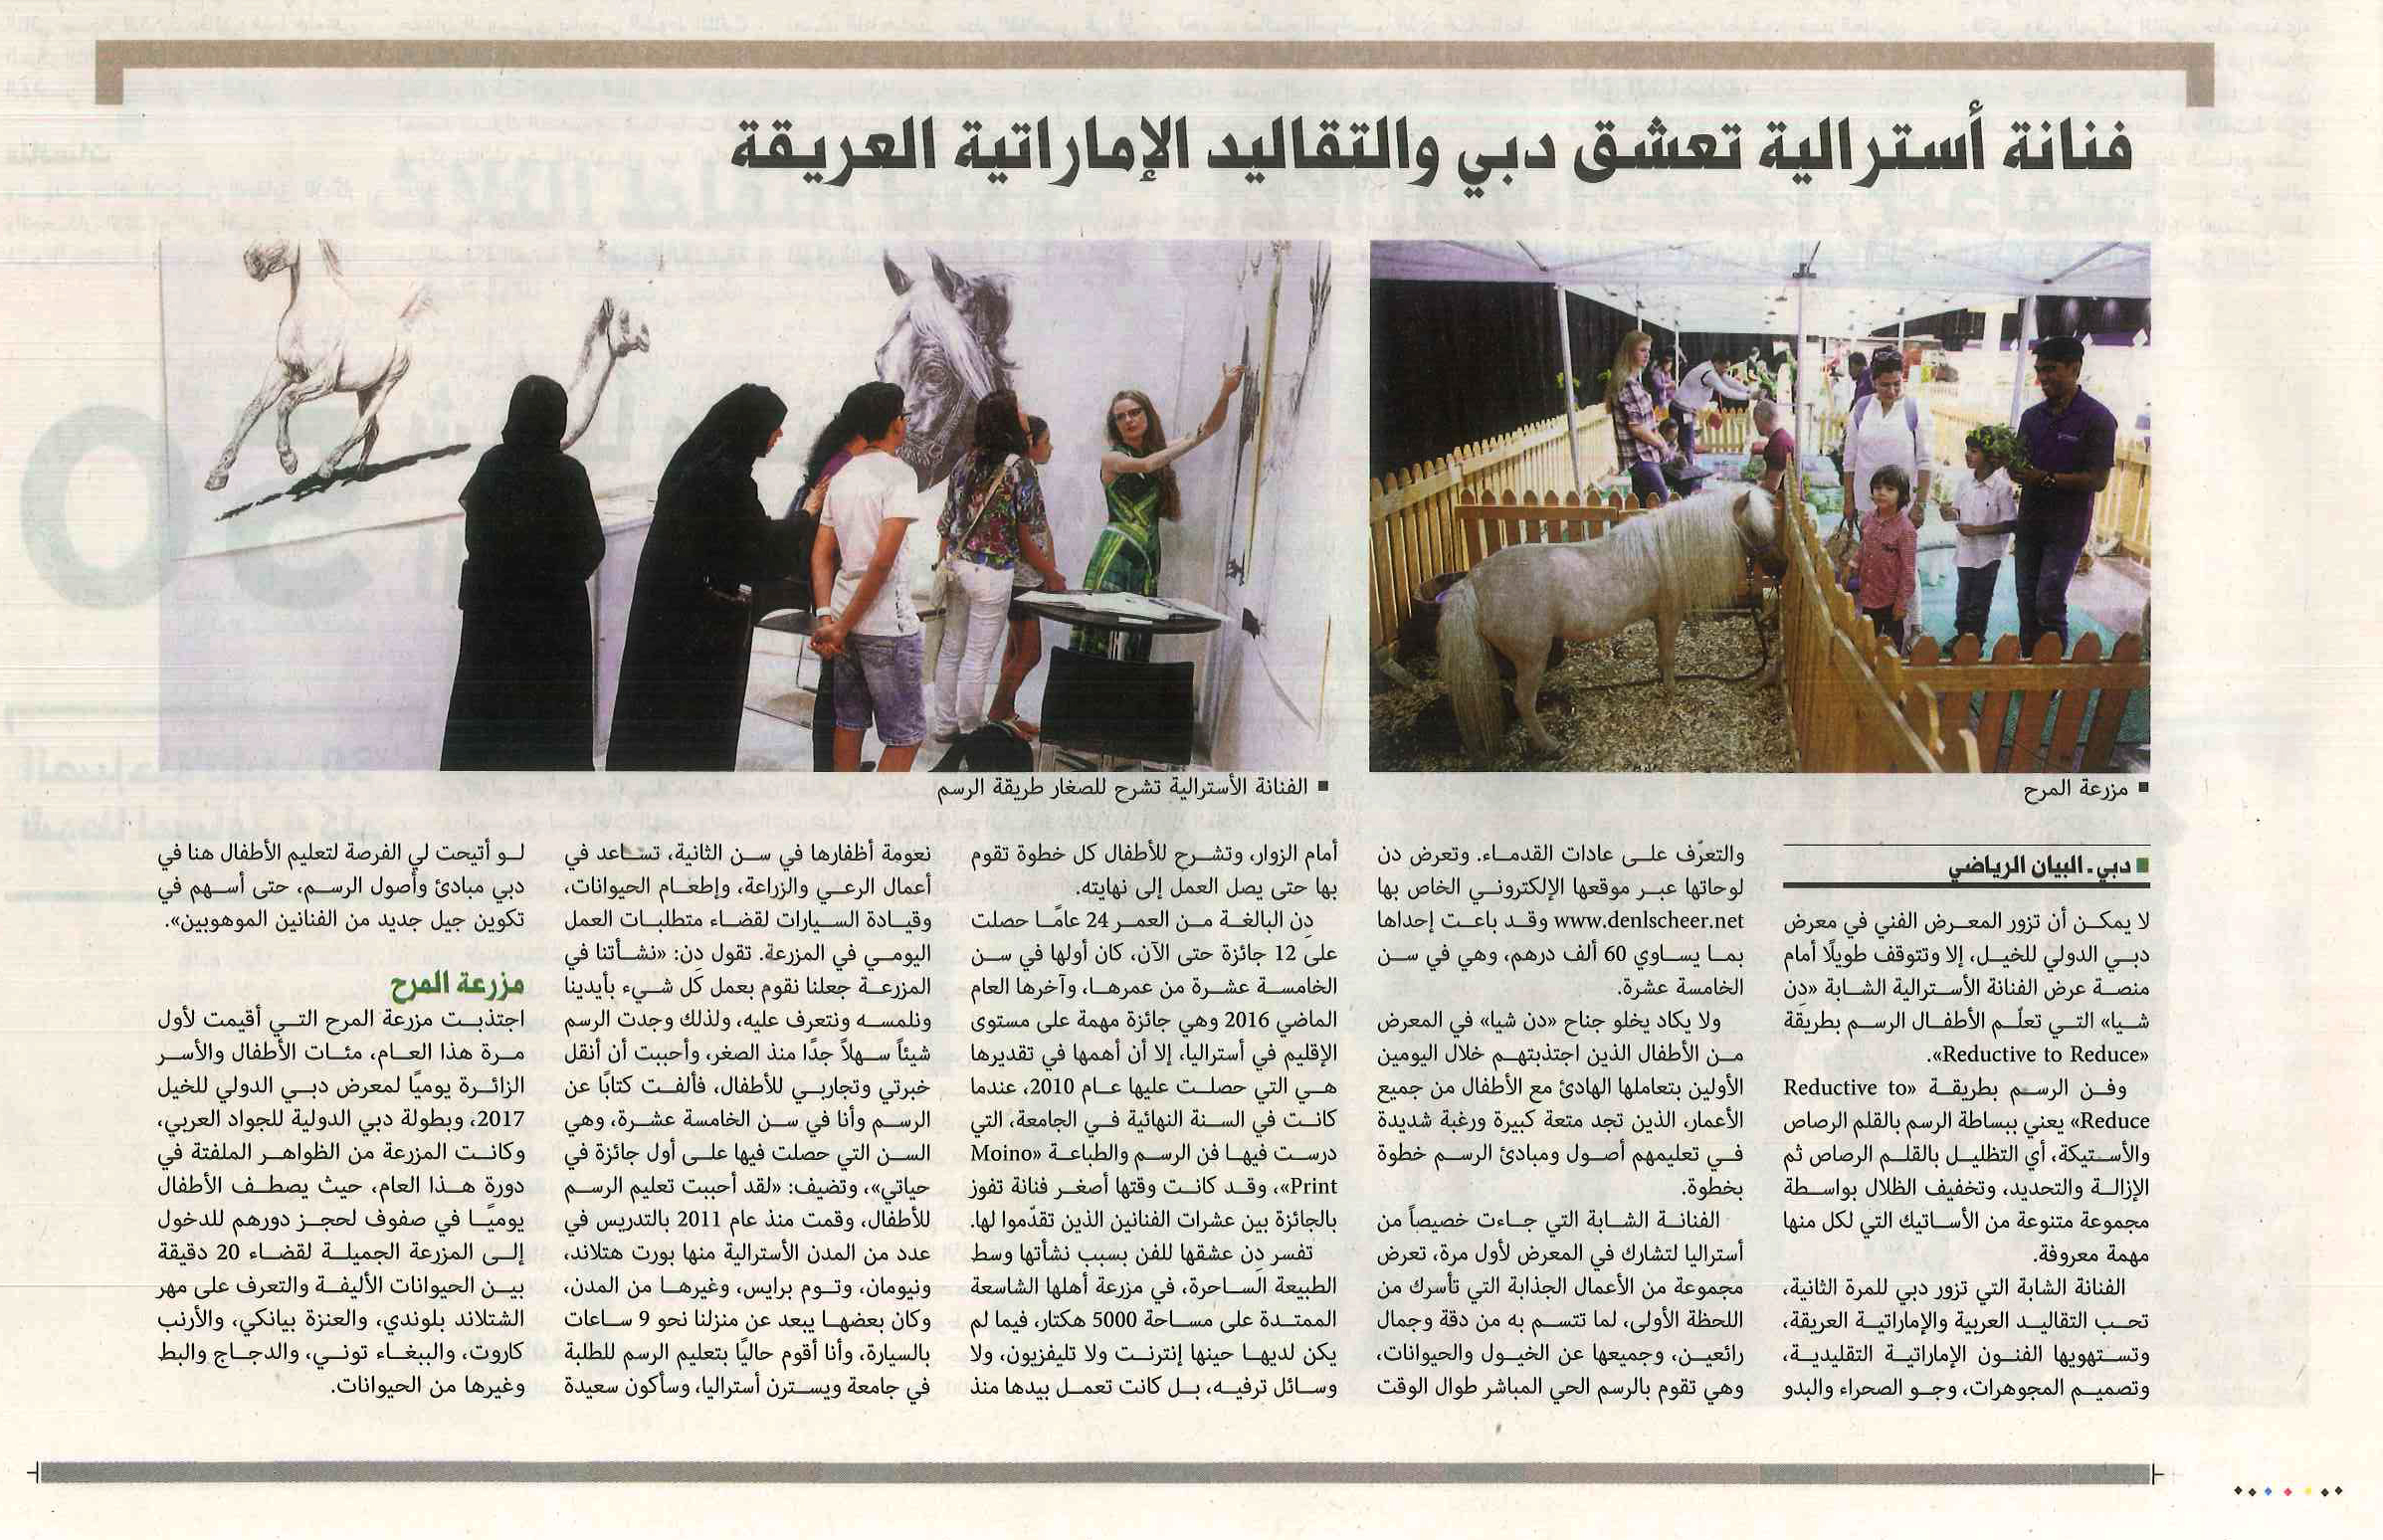 Al Bayan Newspaper. Dubai (UAE). 2017